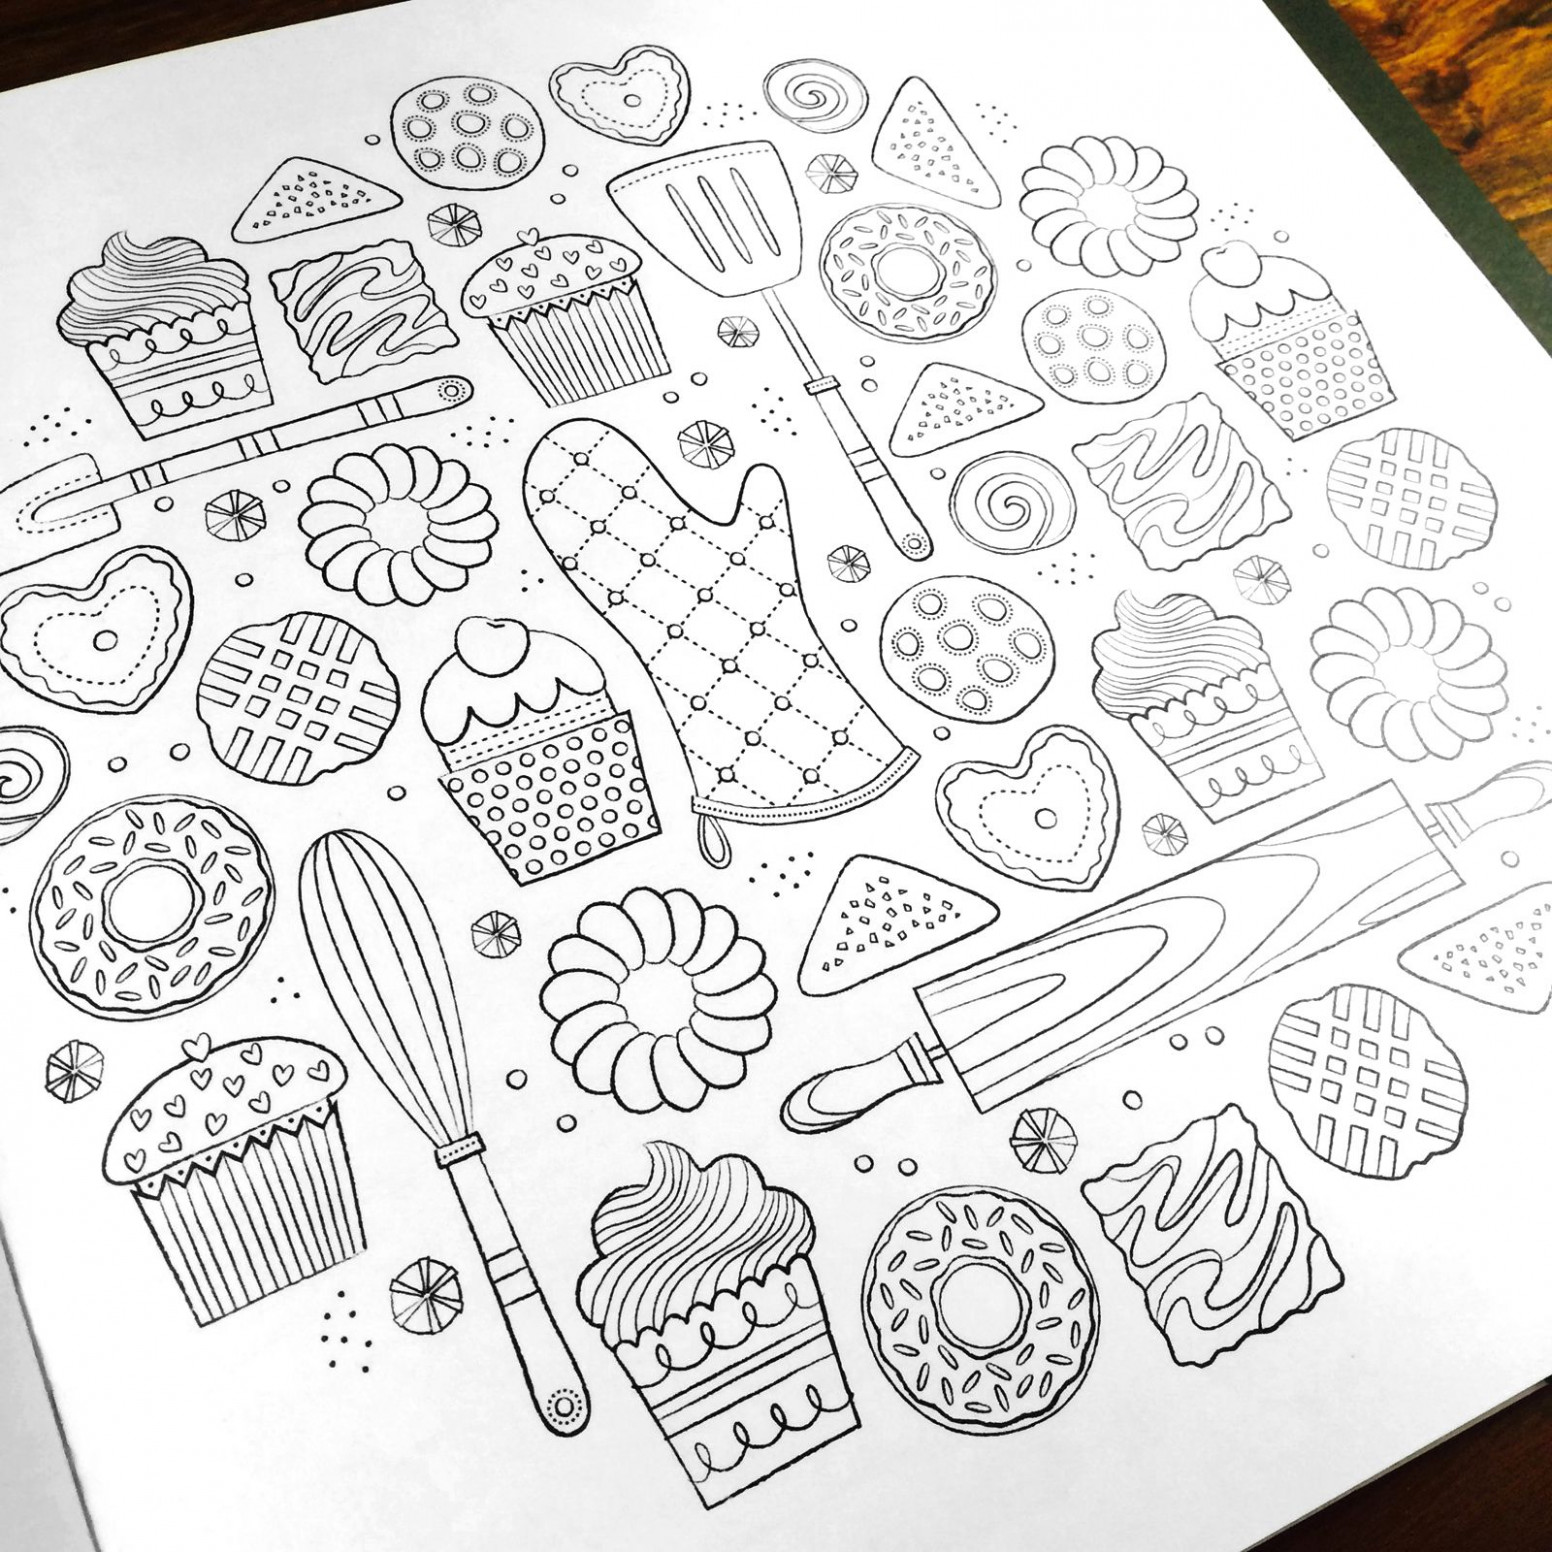 A hand-crafted coloring book for adults featuring intricate designs ..